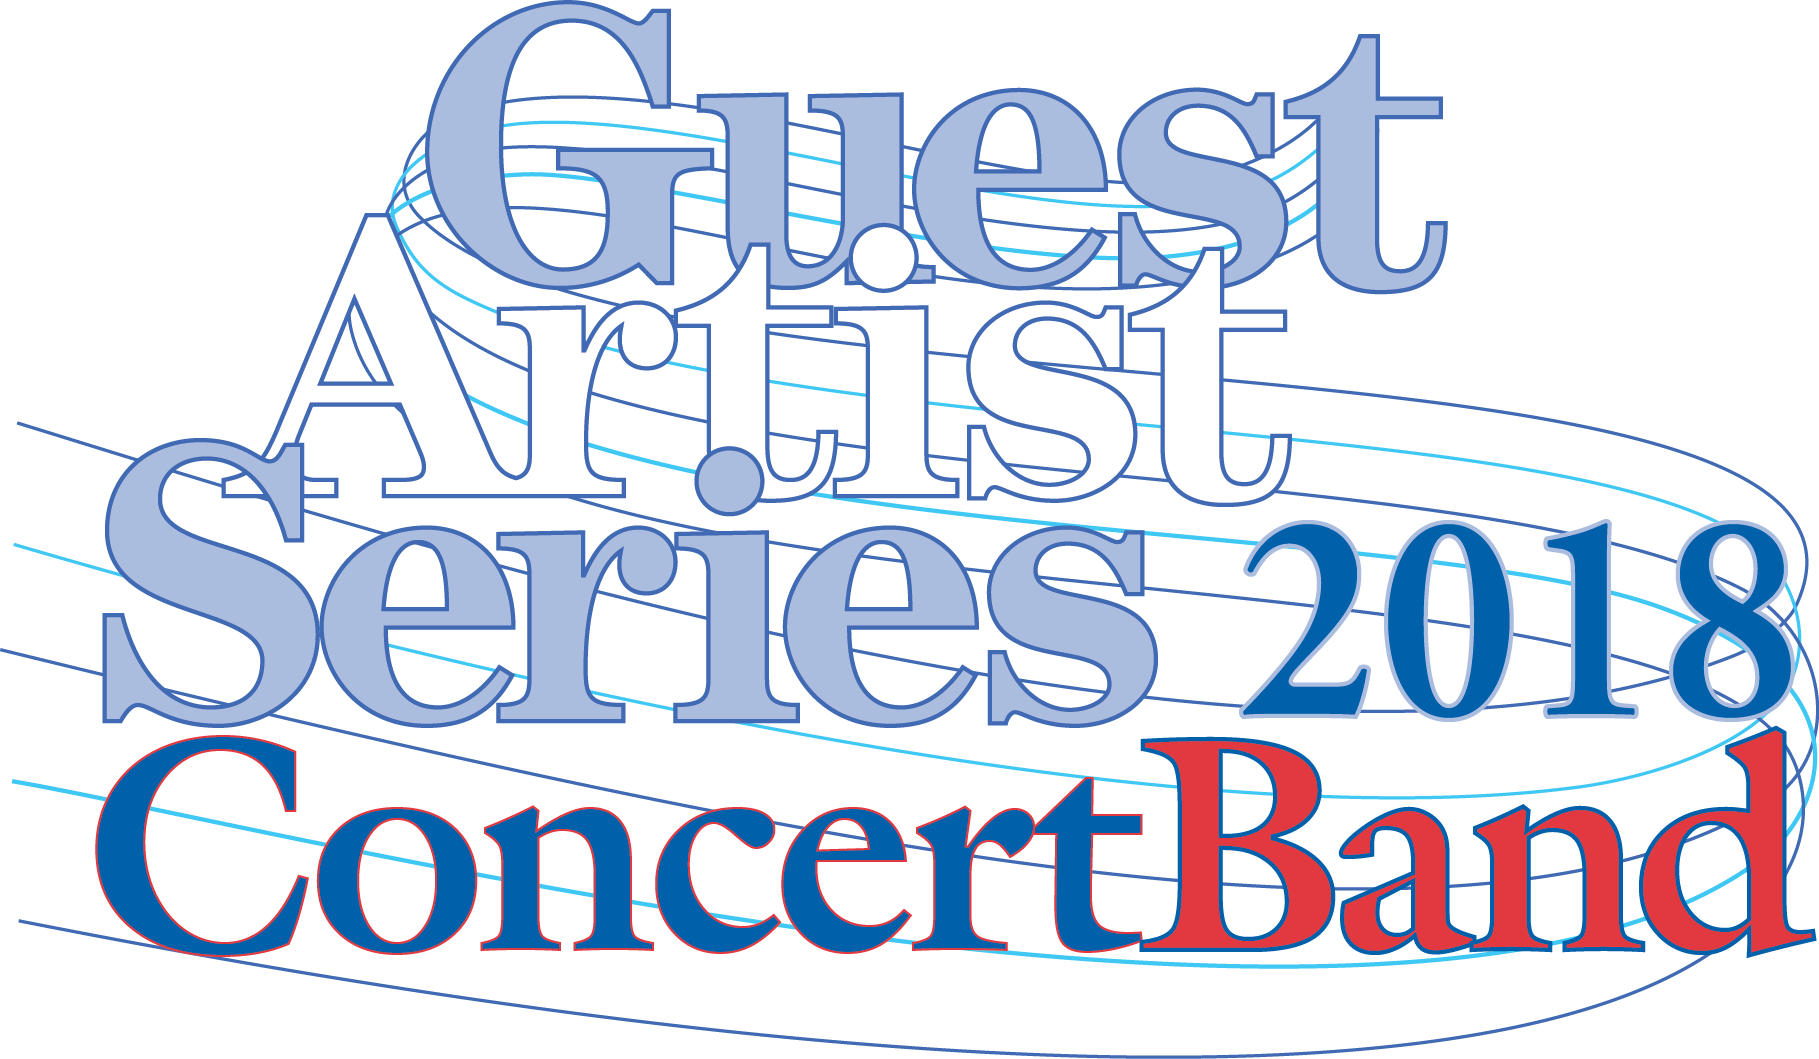 Jazz Heritage Series Events Page